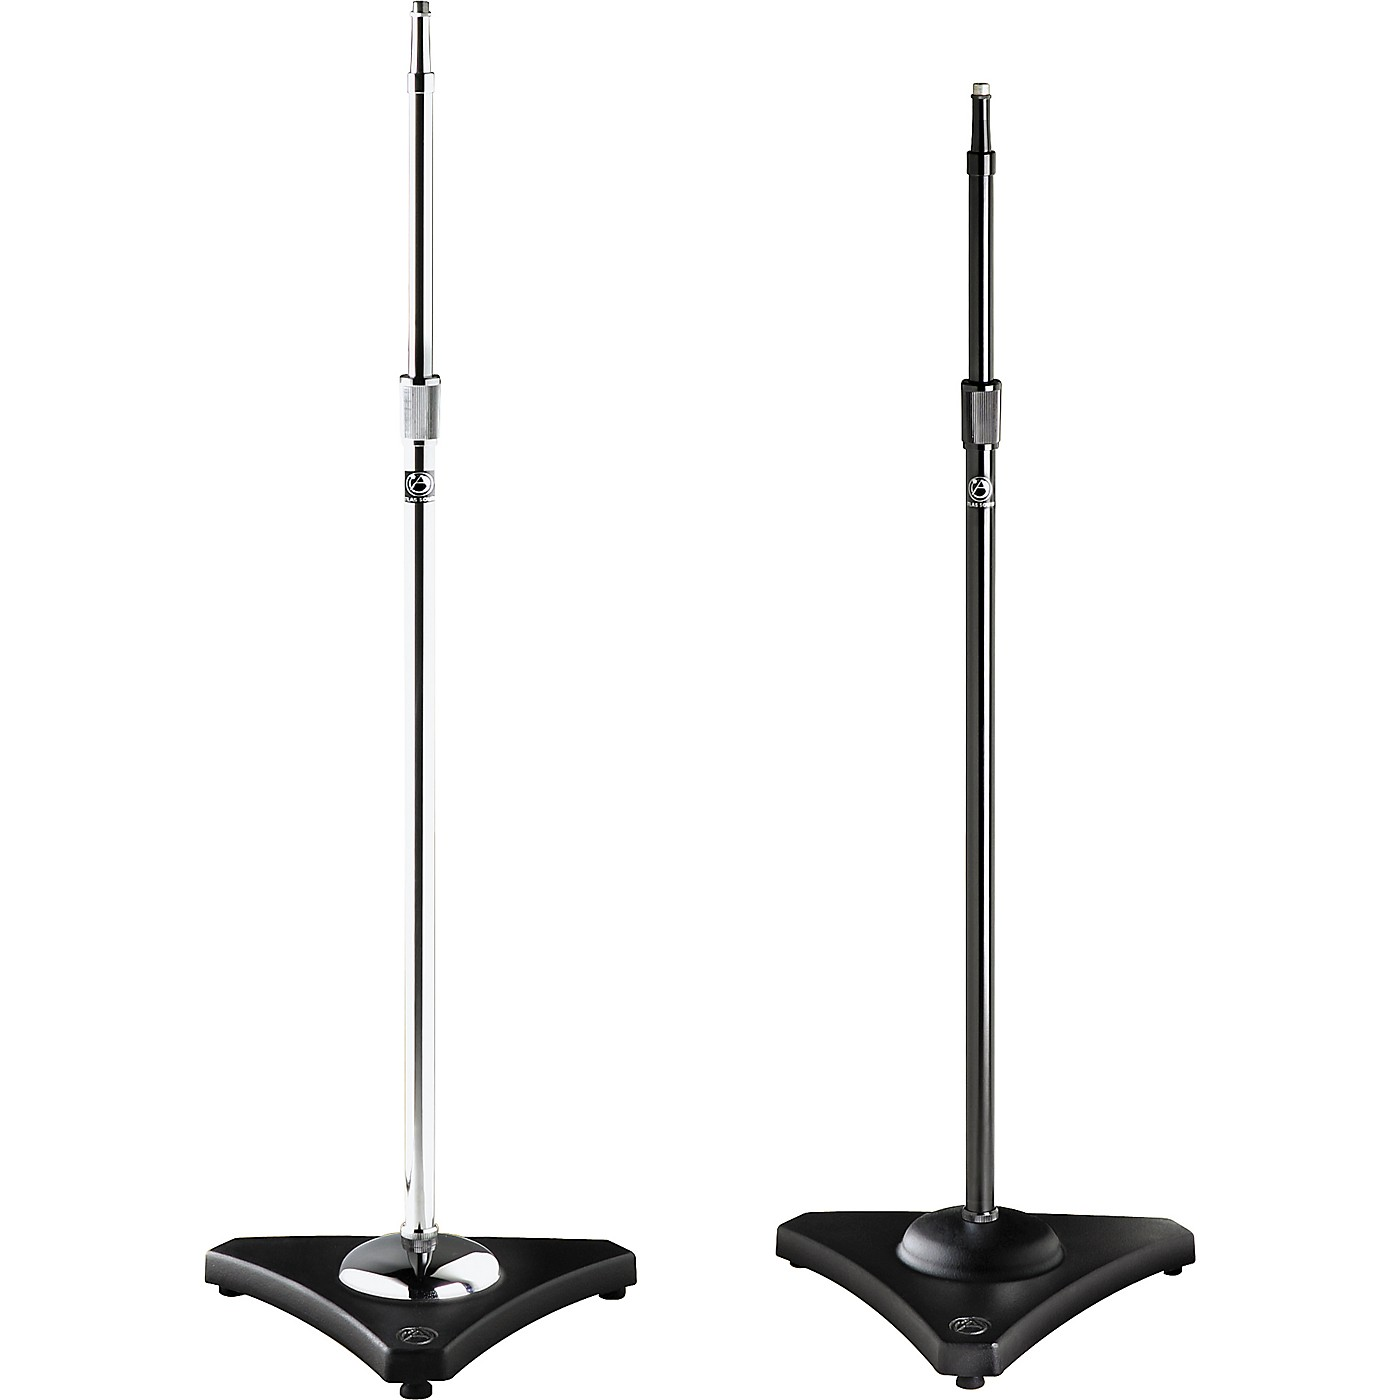 Atlas Sound MS25 Pro Mic Stand with Air Suspension thumbnail